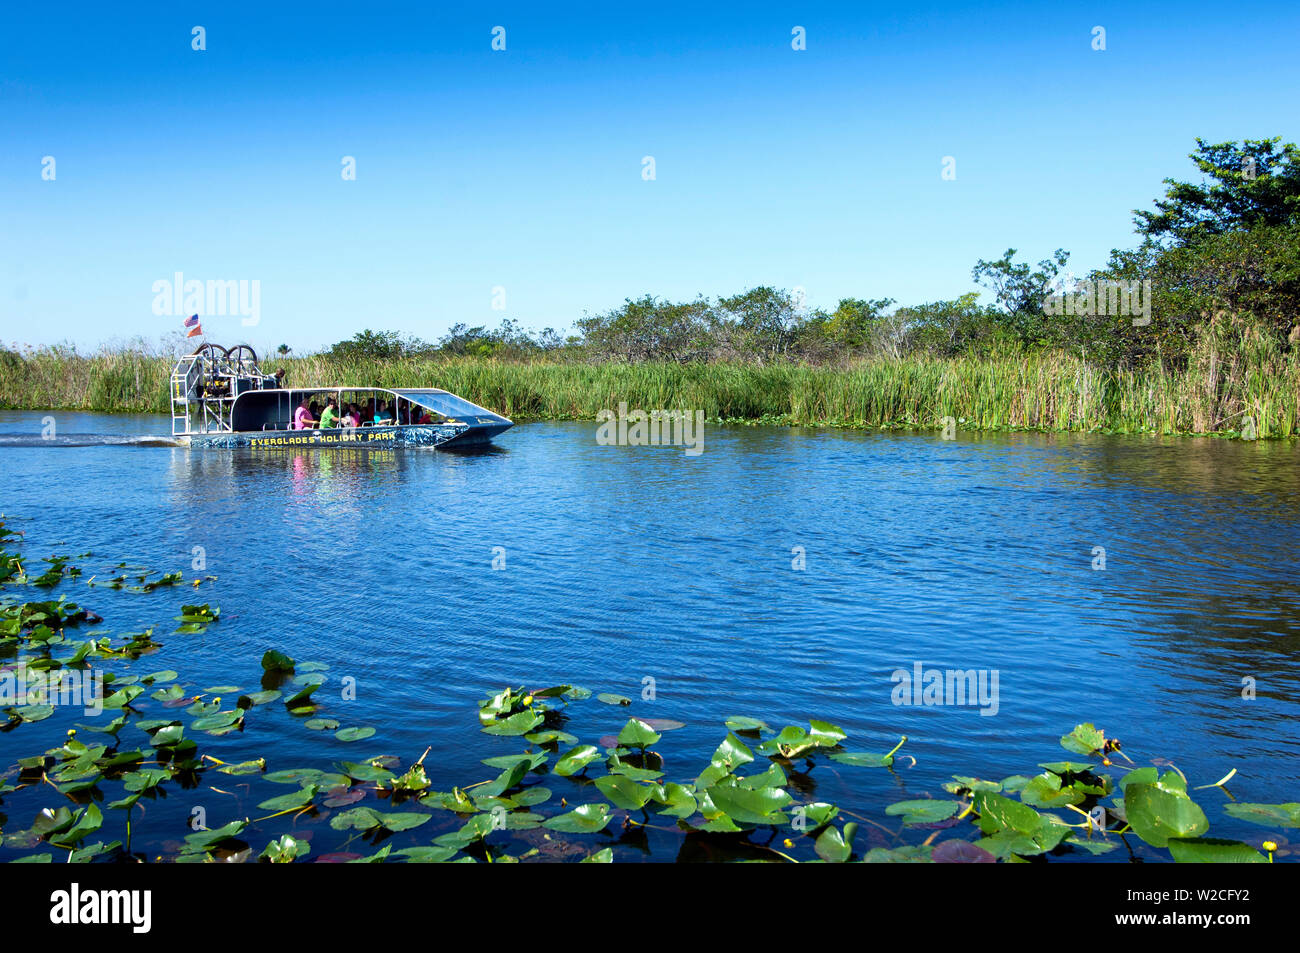 Florida, Fort Lauderdale, Everglades Holiday Park, Airboat Tours Stock Photo